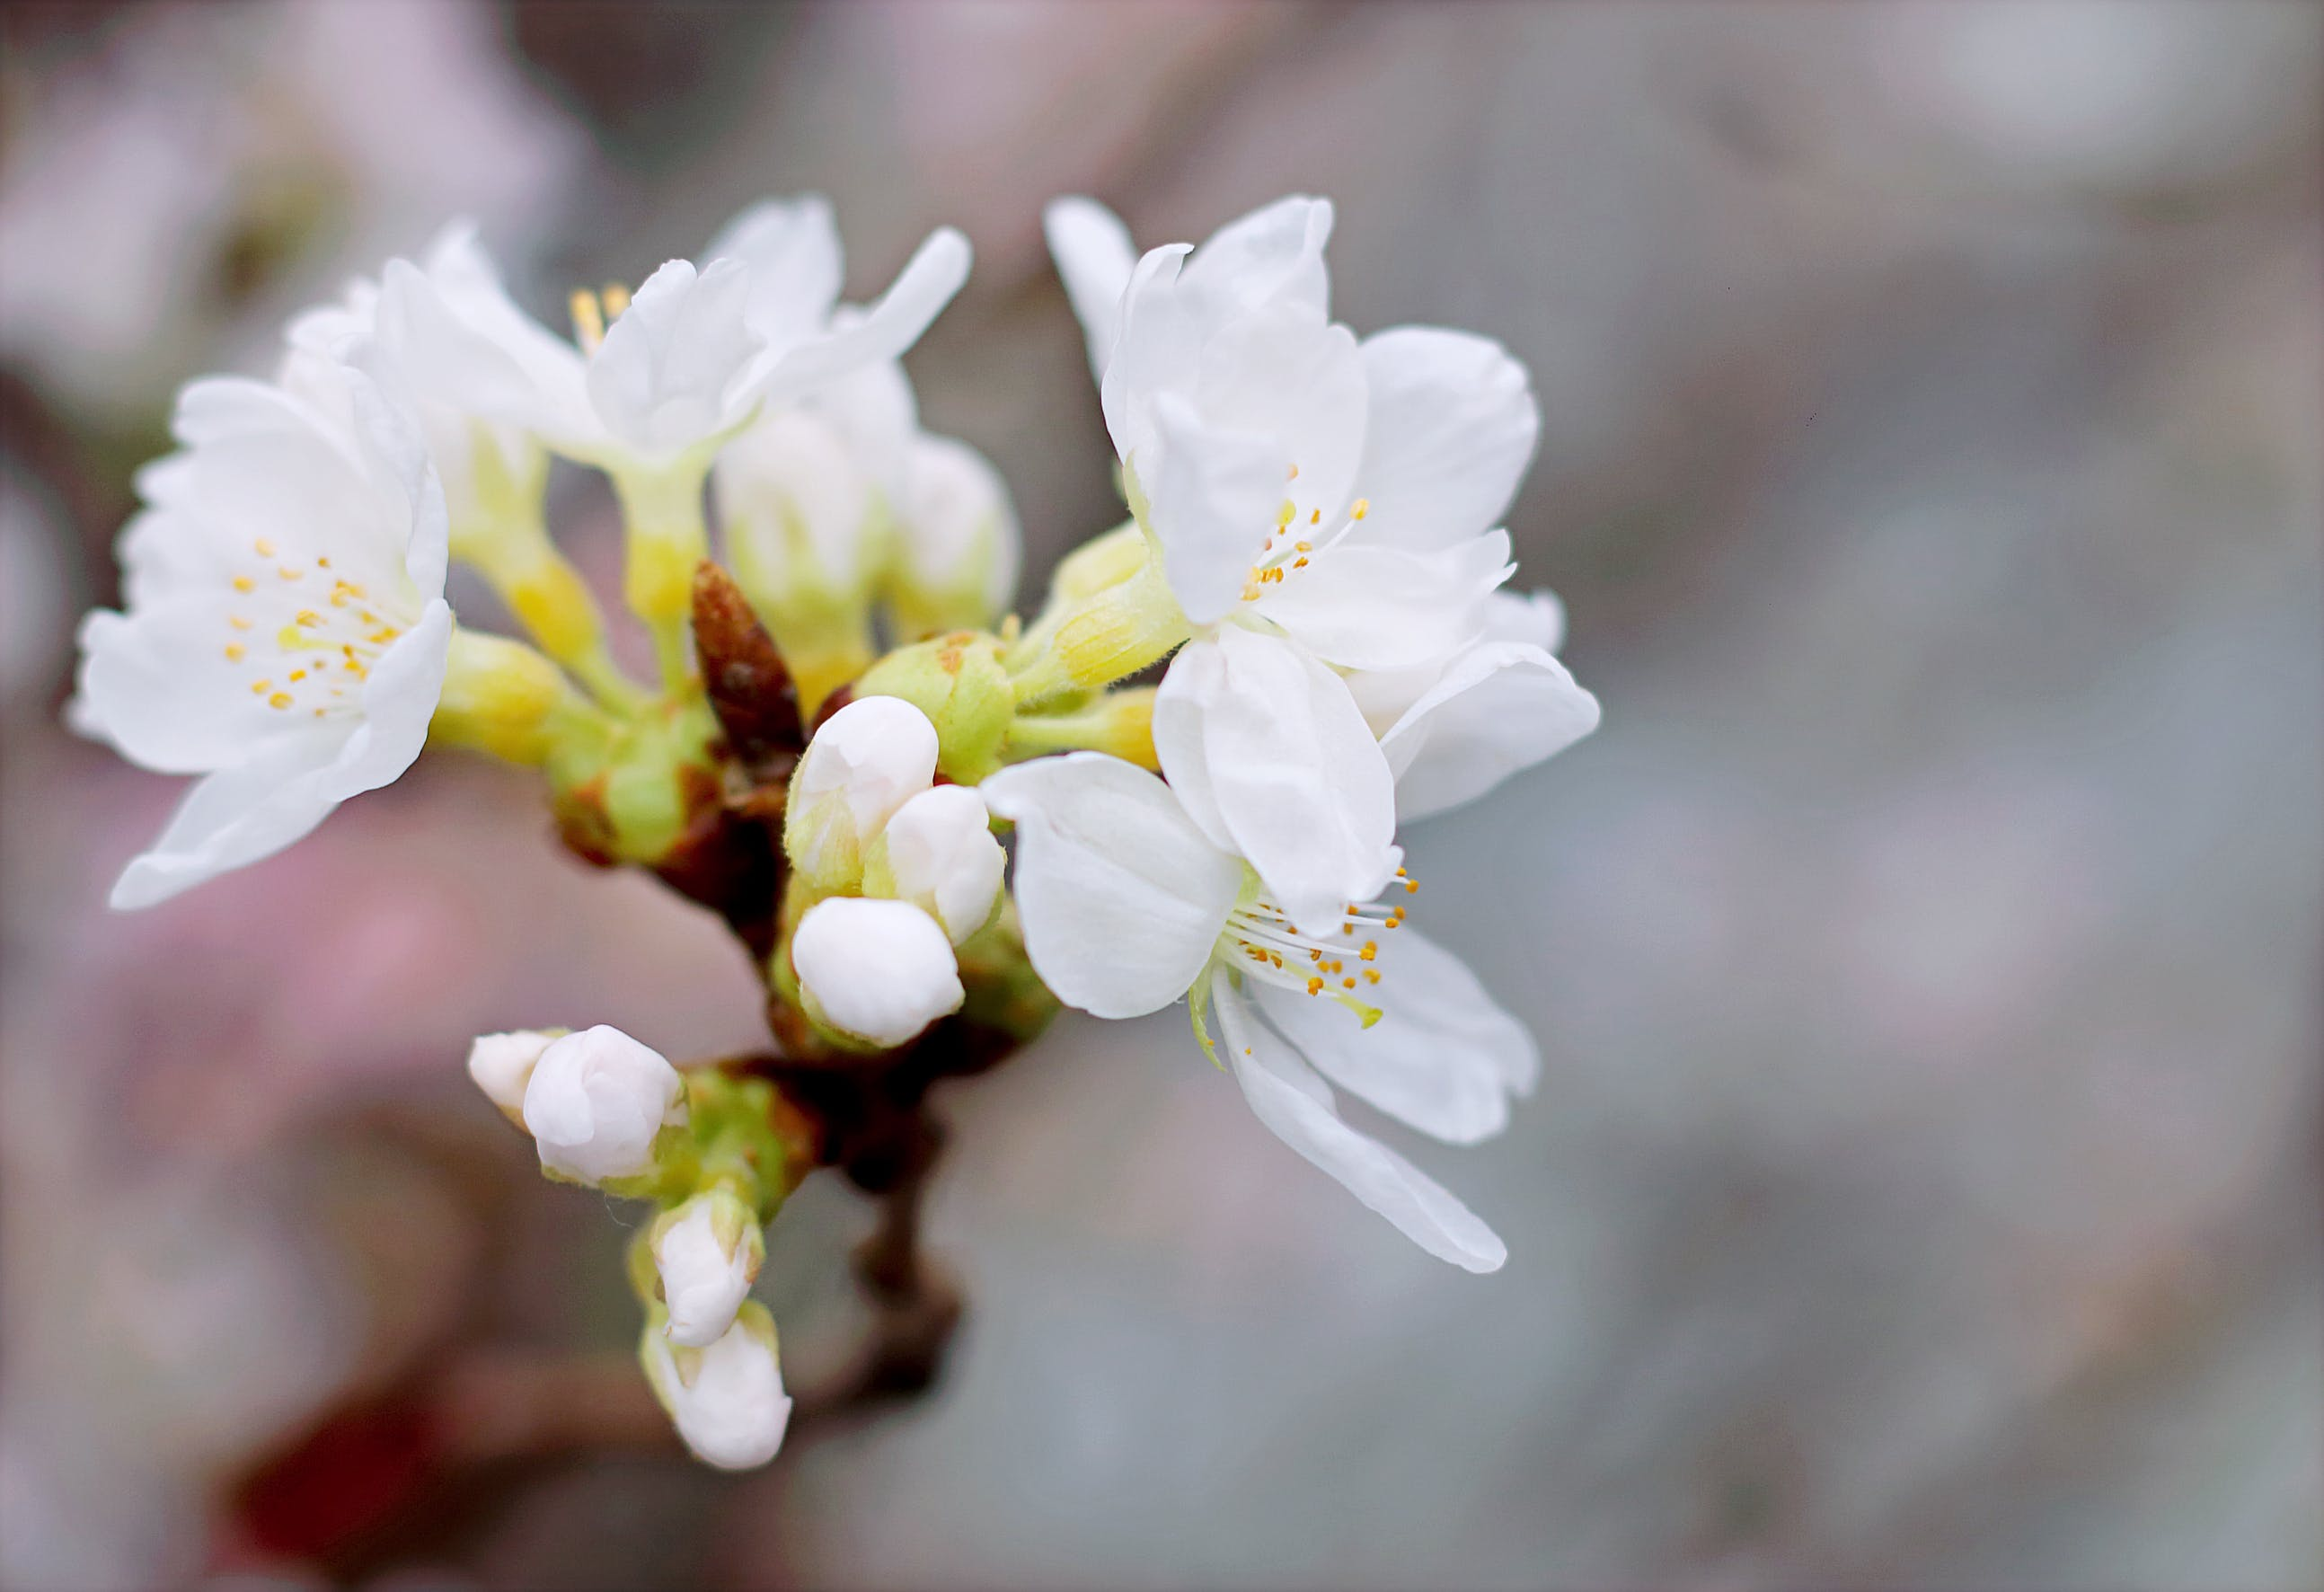 White Cherry Blossoms in Bloom Close-up Photo